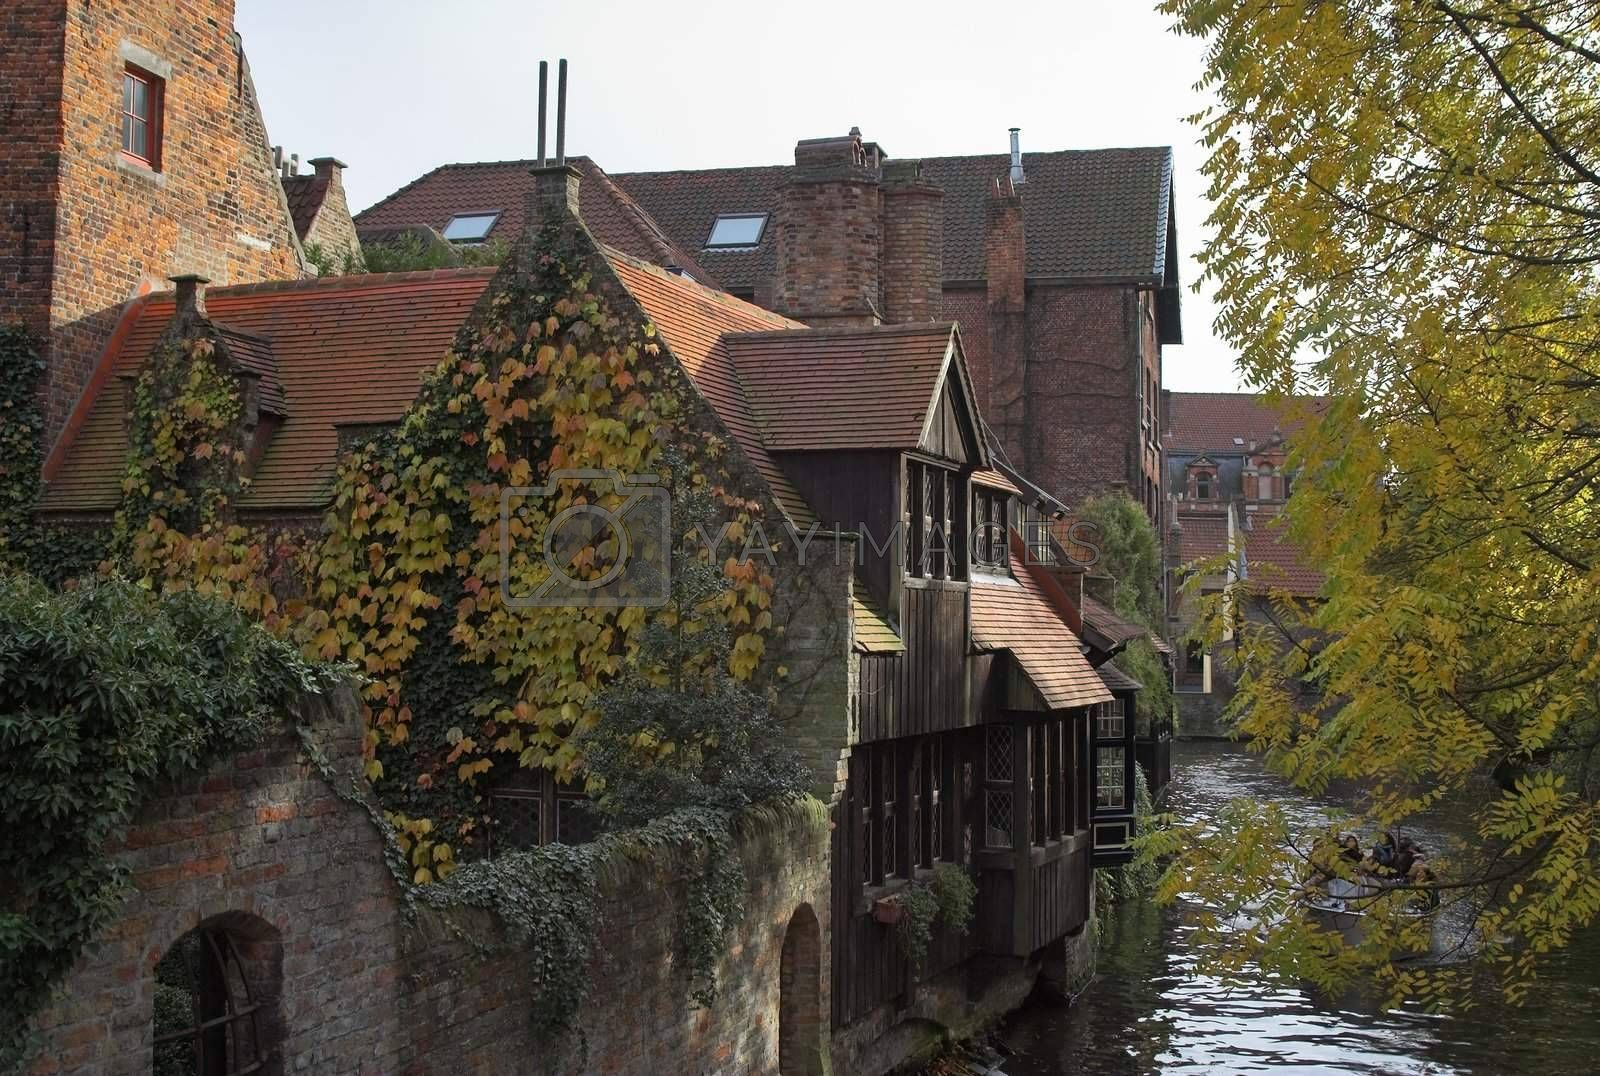 Ancient houses on a channel in Brugge by MikLav